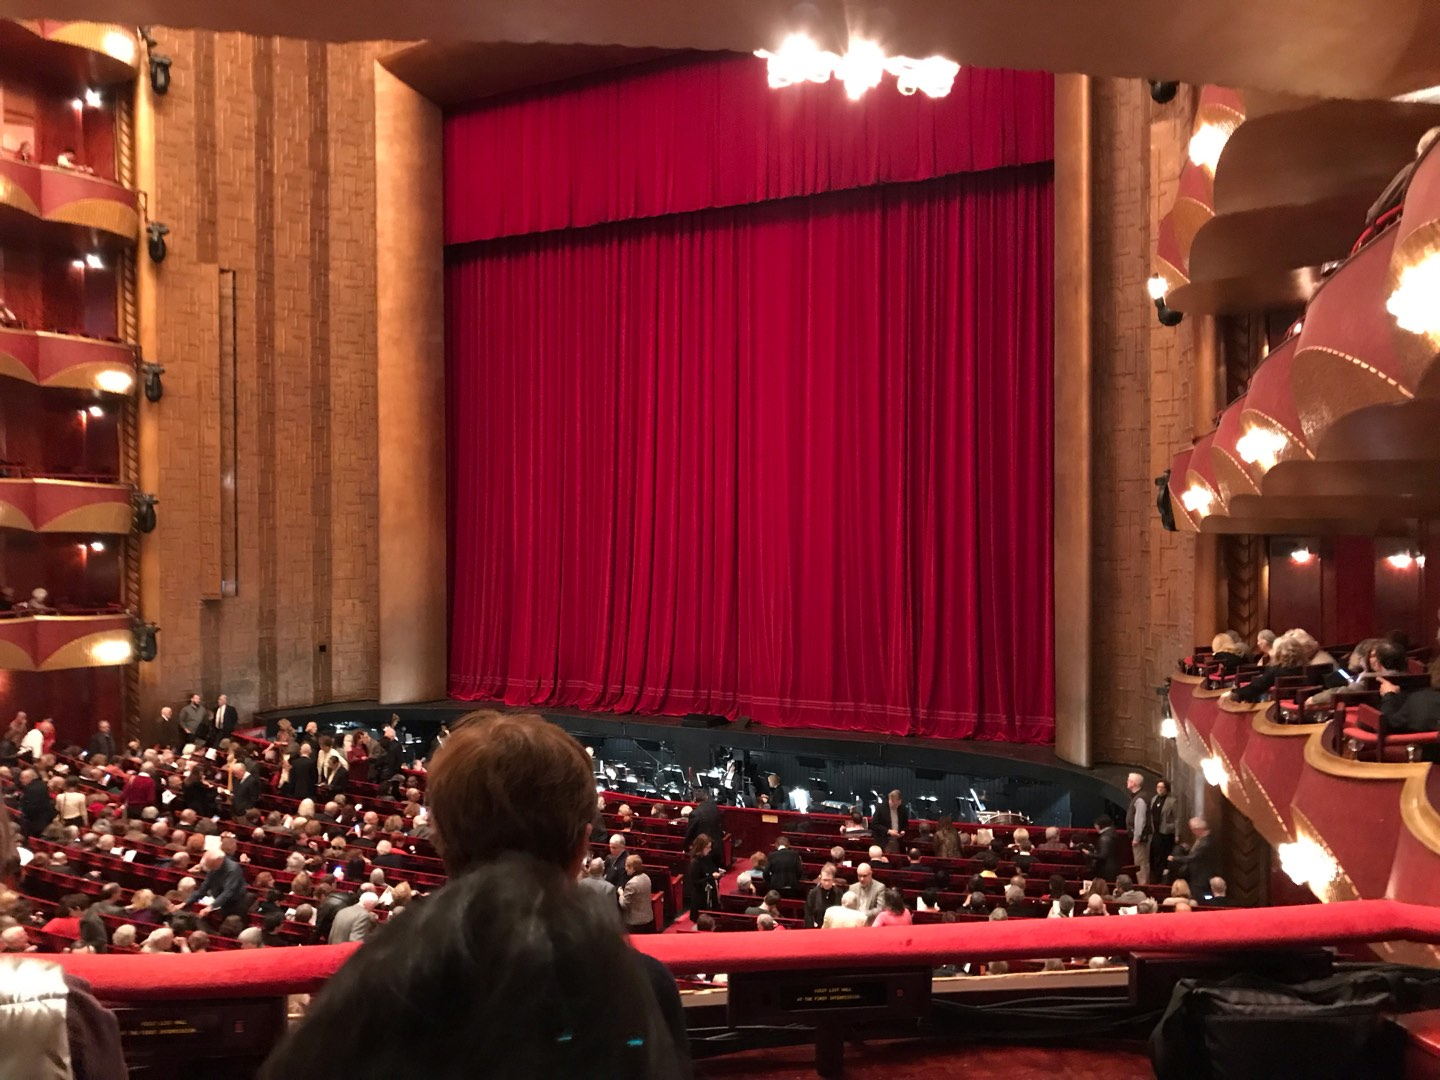 Metropolitan Opera House - Lincoln Center Section Parterre Box Row 16 Seat 7 And 8